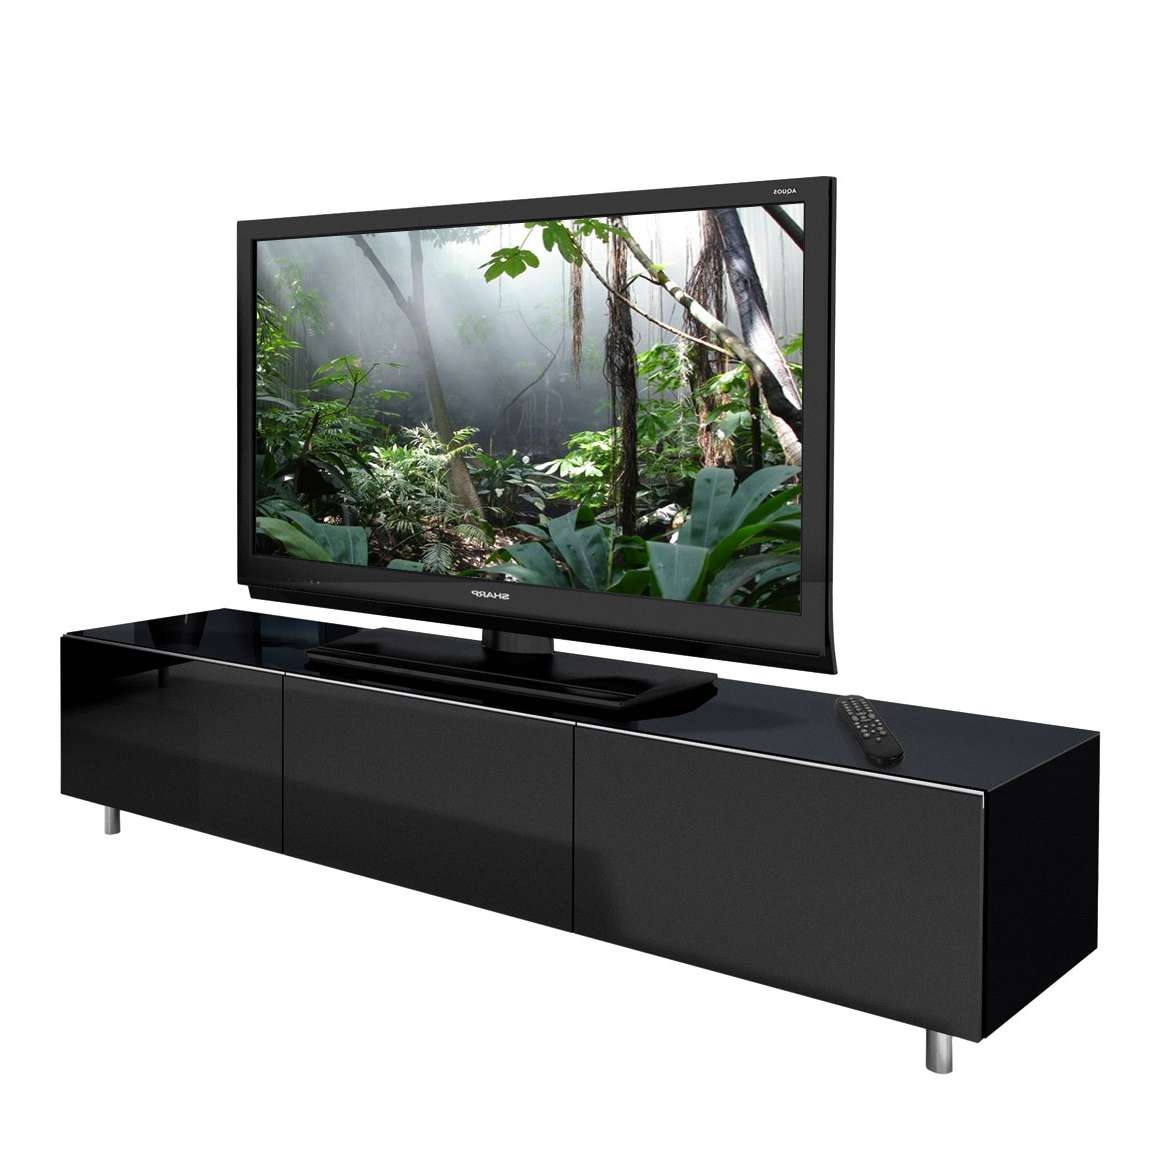 Spectral Just Racks Jrl1650s Gloss Black Tv Cabinet – Just Racks For Gloss Tv Stands (View 7 of 15)